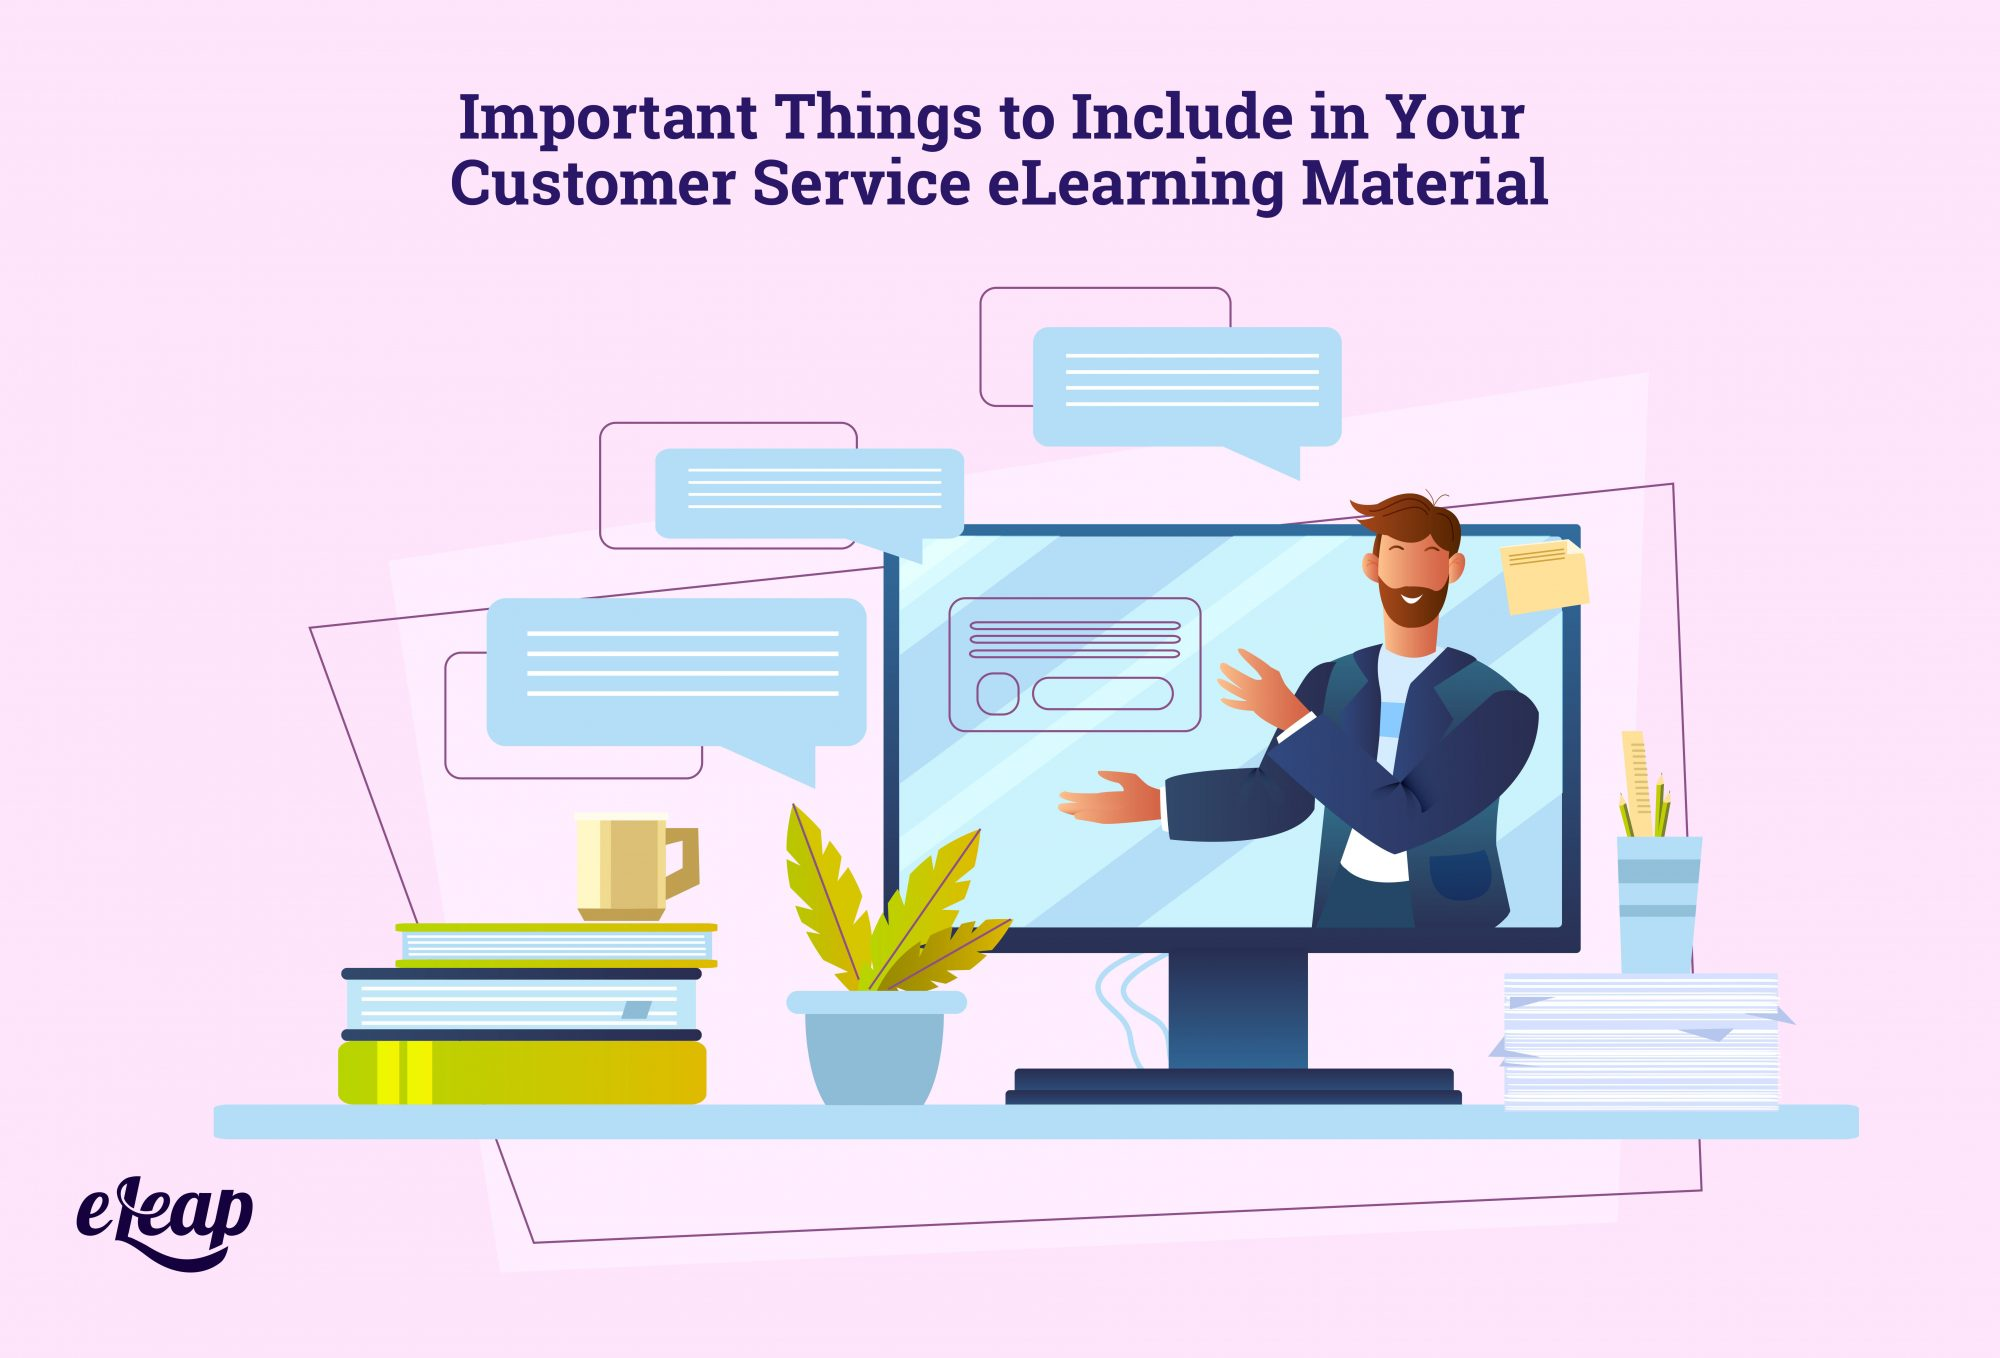 Important Things to Include in Your Customer Service eLearning Material